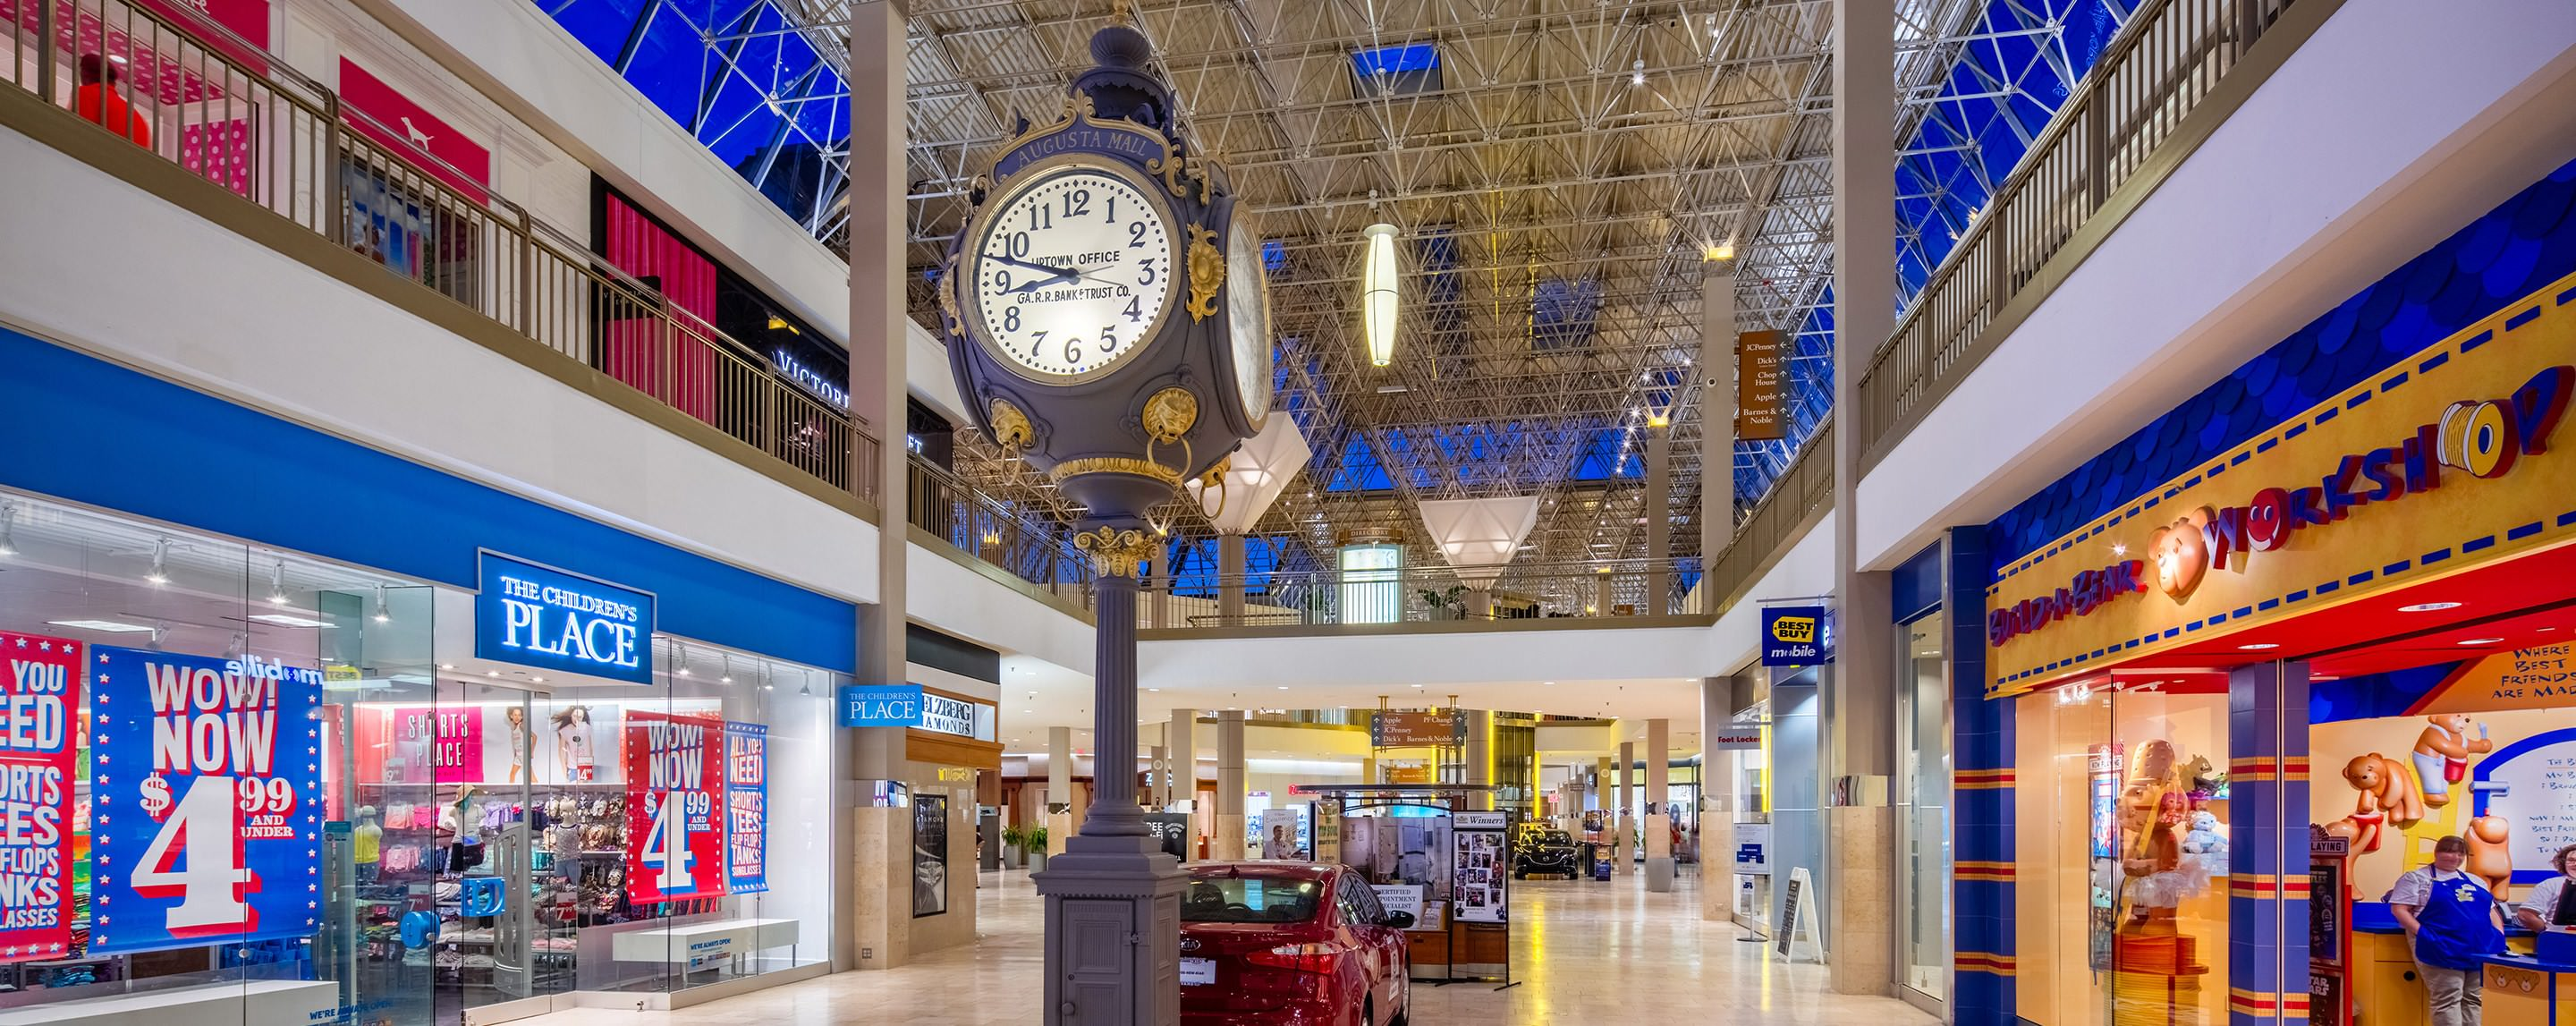 Inside in one of the Augusta Mall's hallways, you can tell time with a tall decorative clock in the common area.